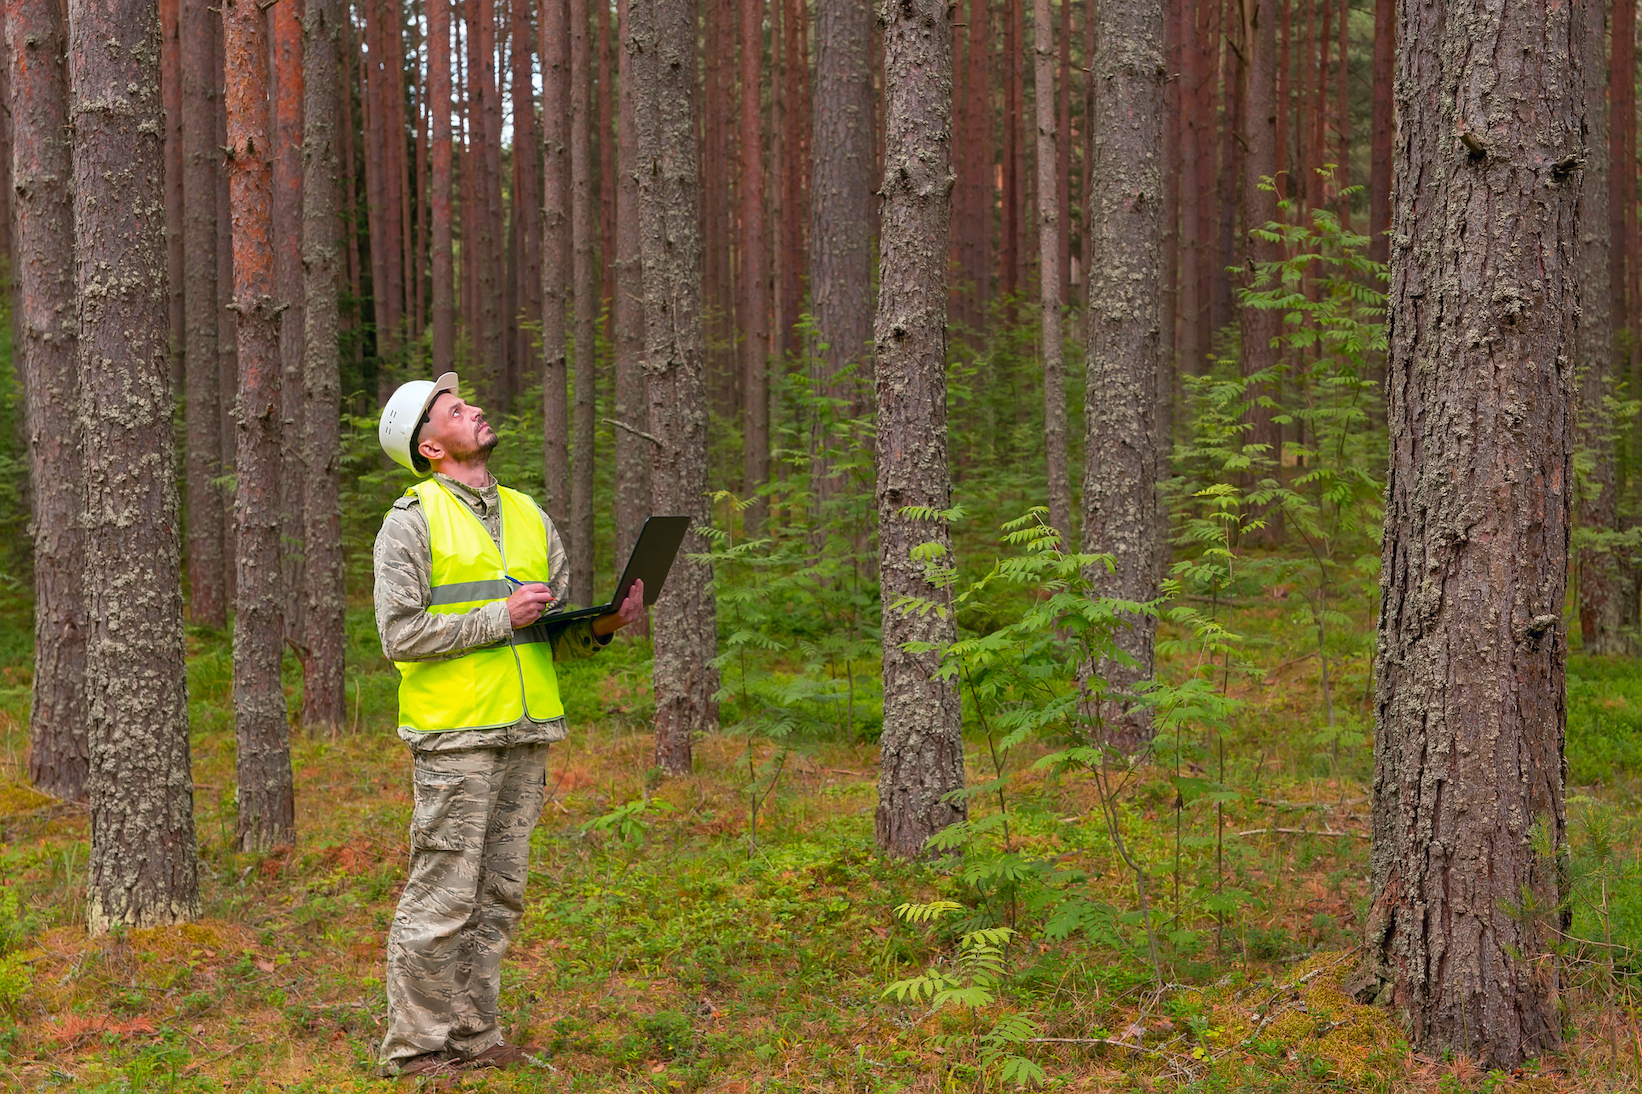 Forest engineer in a working forest